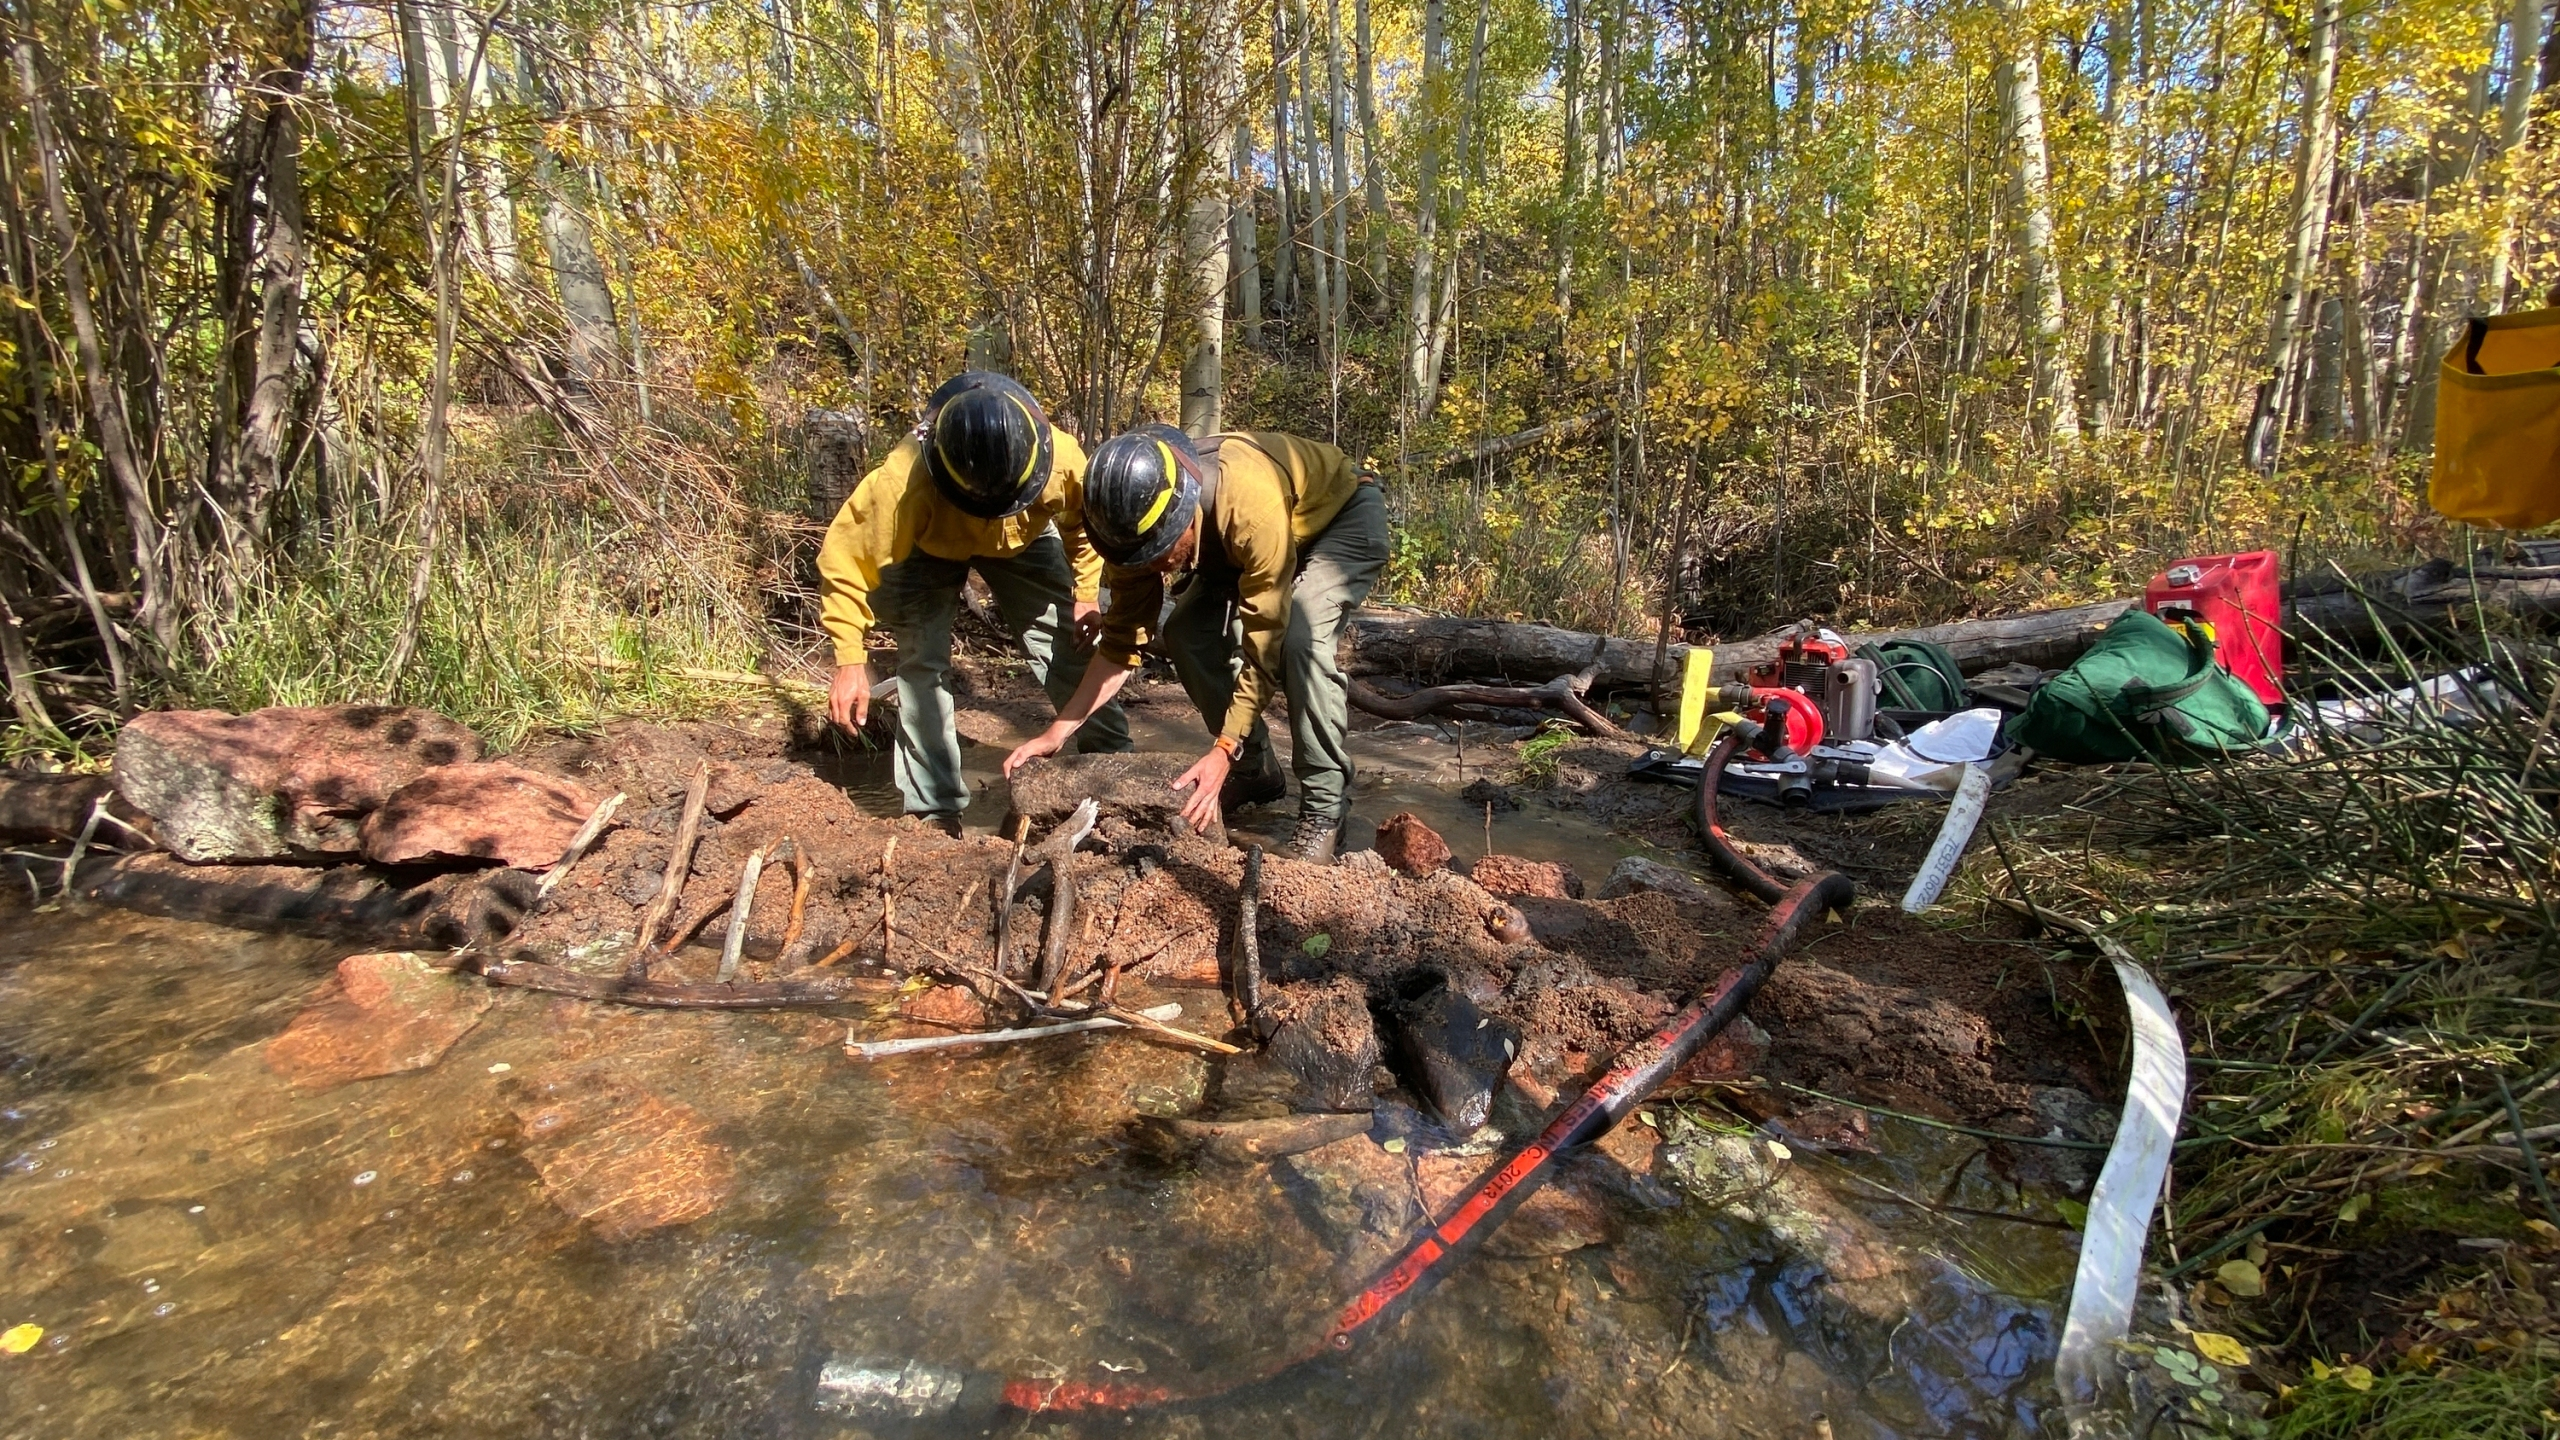 This Wednesday, Sept. 30, 2020, photo released by the U.S. Forest Service shows Little Laramie Engine crew members daming a stream for structure protection from the Mullen Fire in Foxpark, Wyo. (Lori Iverson/Rocky Mountain Blue Team/U.S. Forest Service via AP)